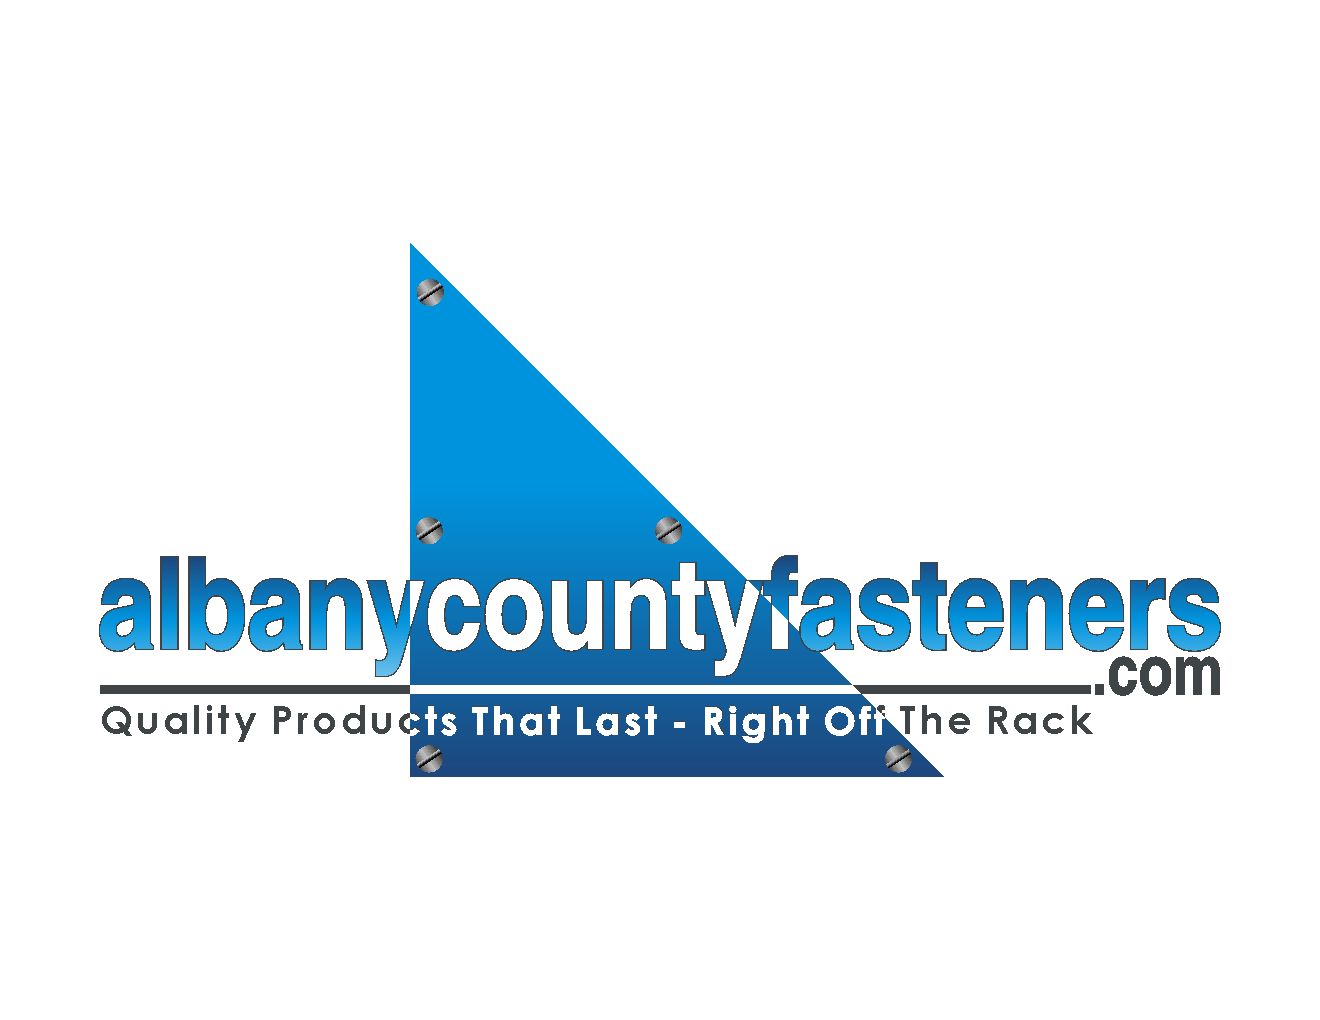 Help AlbanyCountyFasteners.com and ACFNY with a new logo